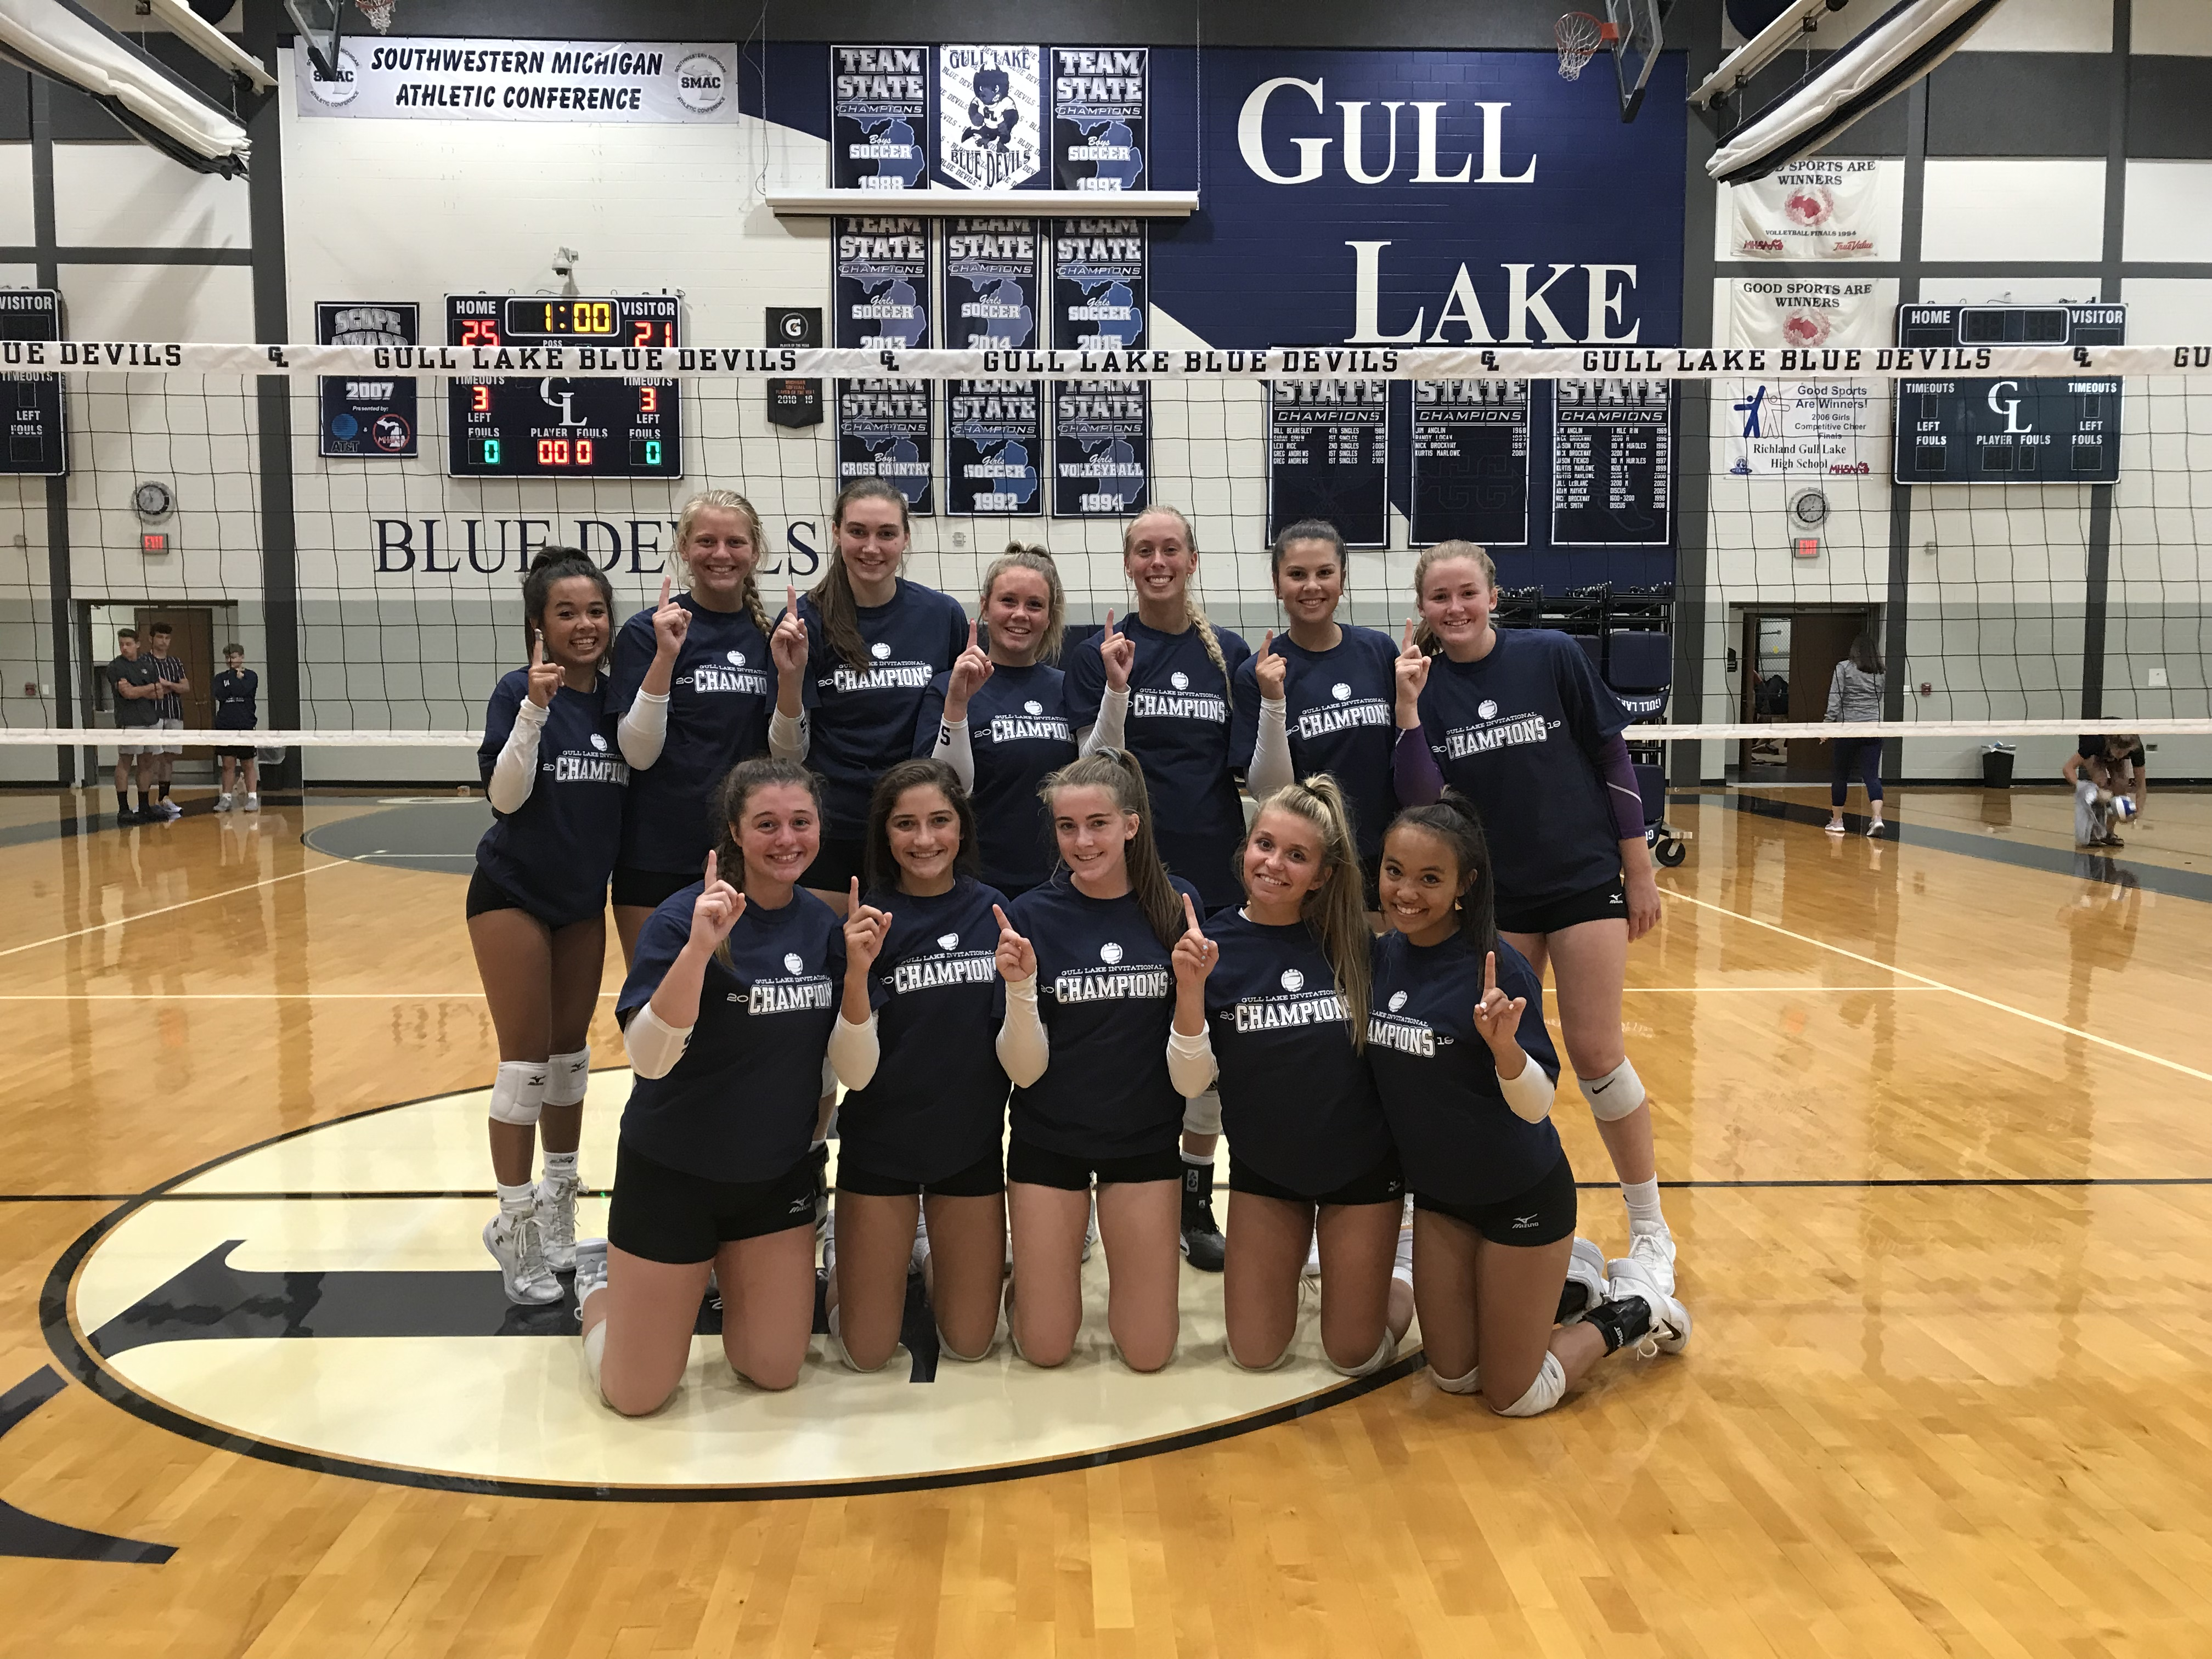 Girls Varsity Volleyball beats Niles 2-0 in finals of Gull Lake Invitational